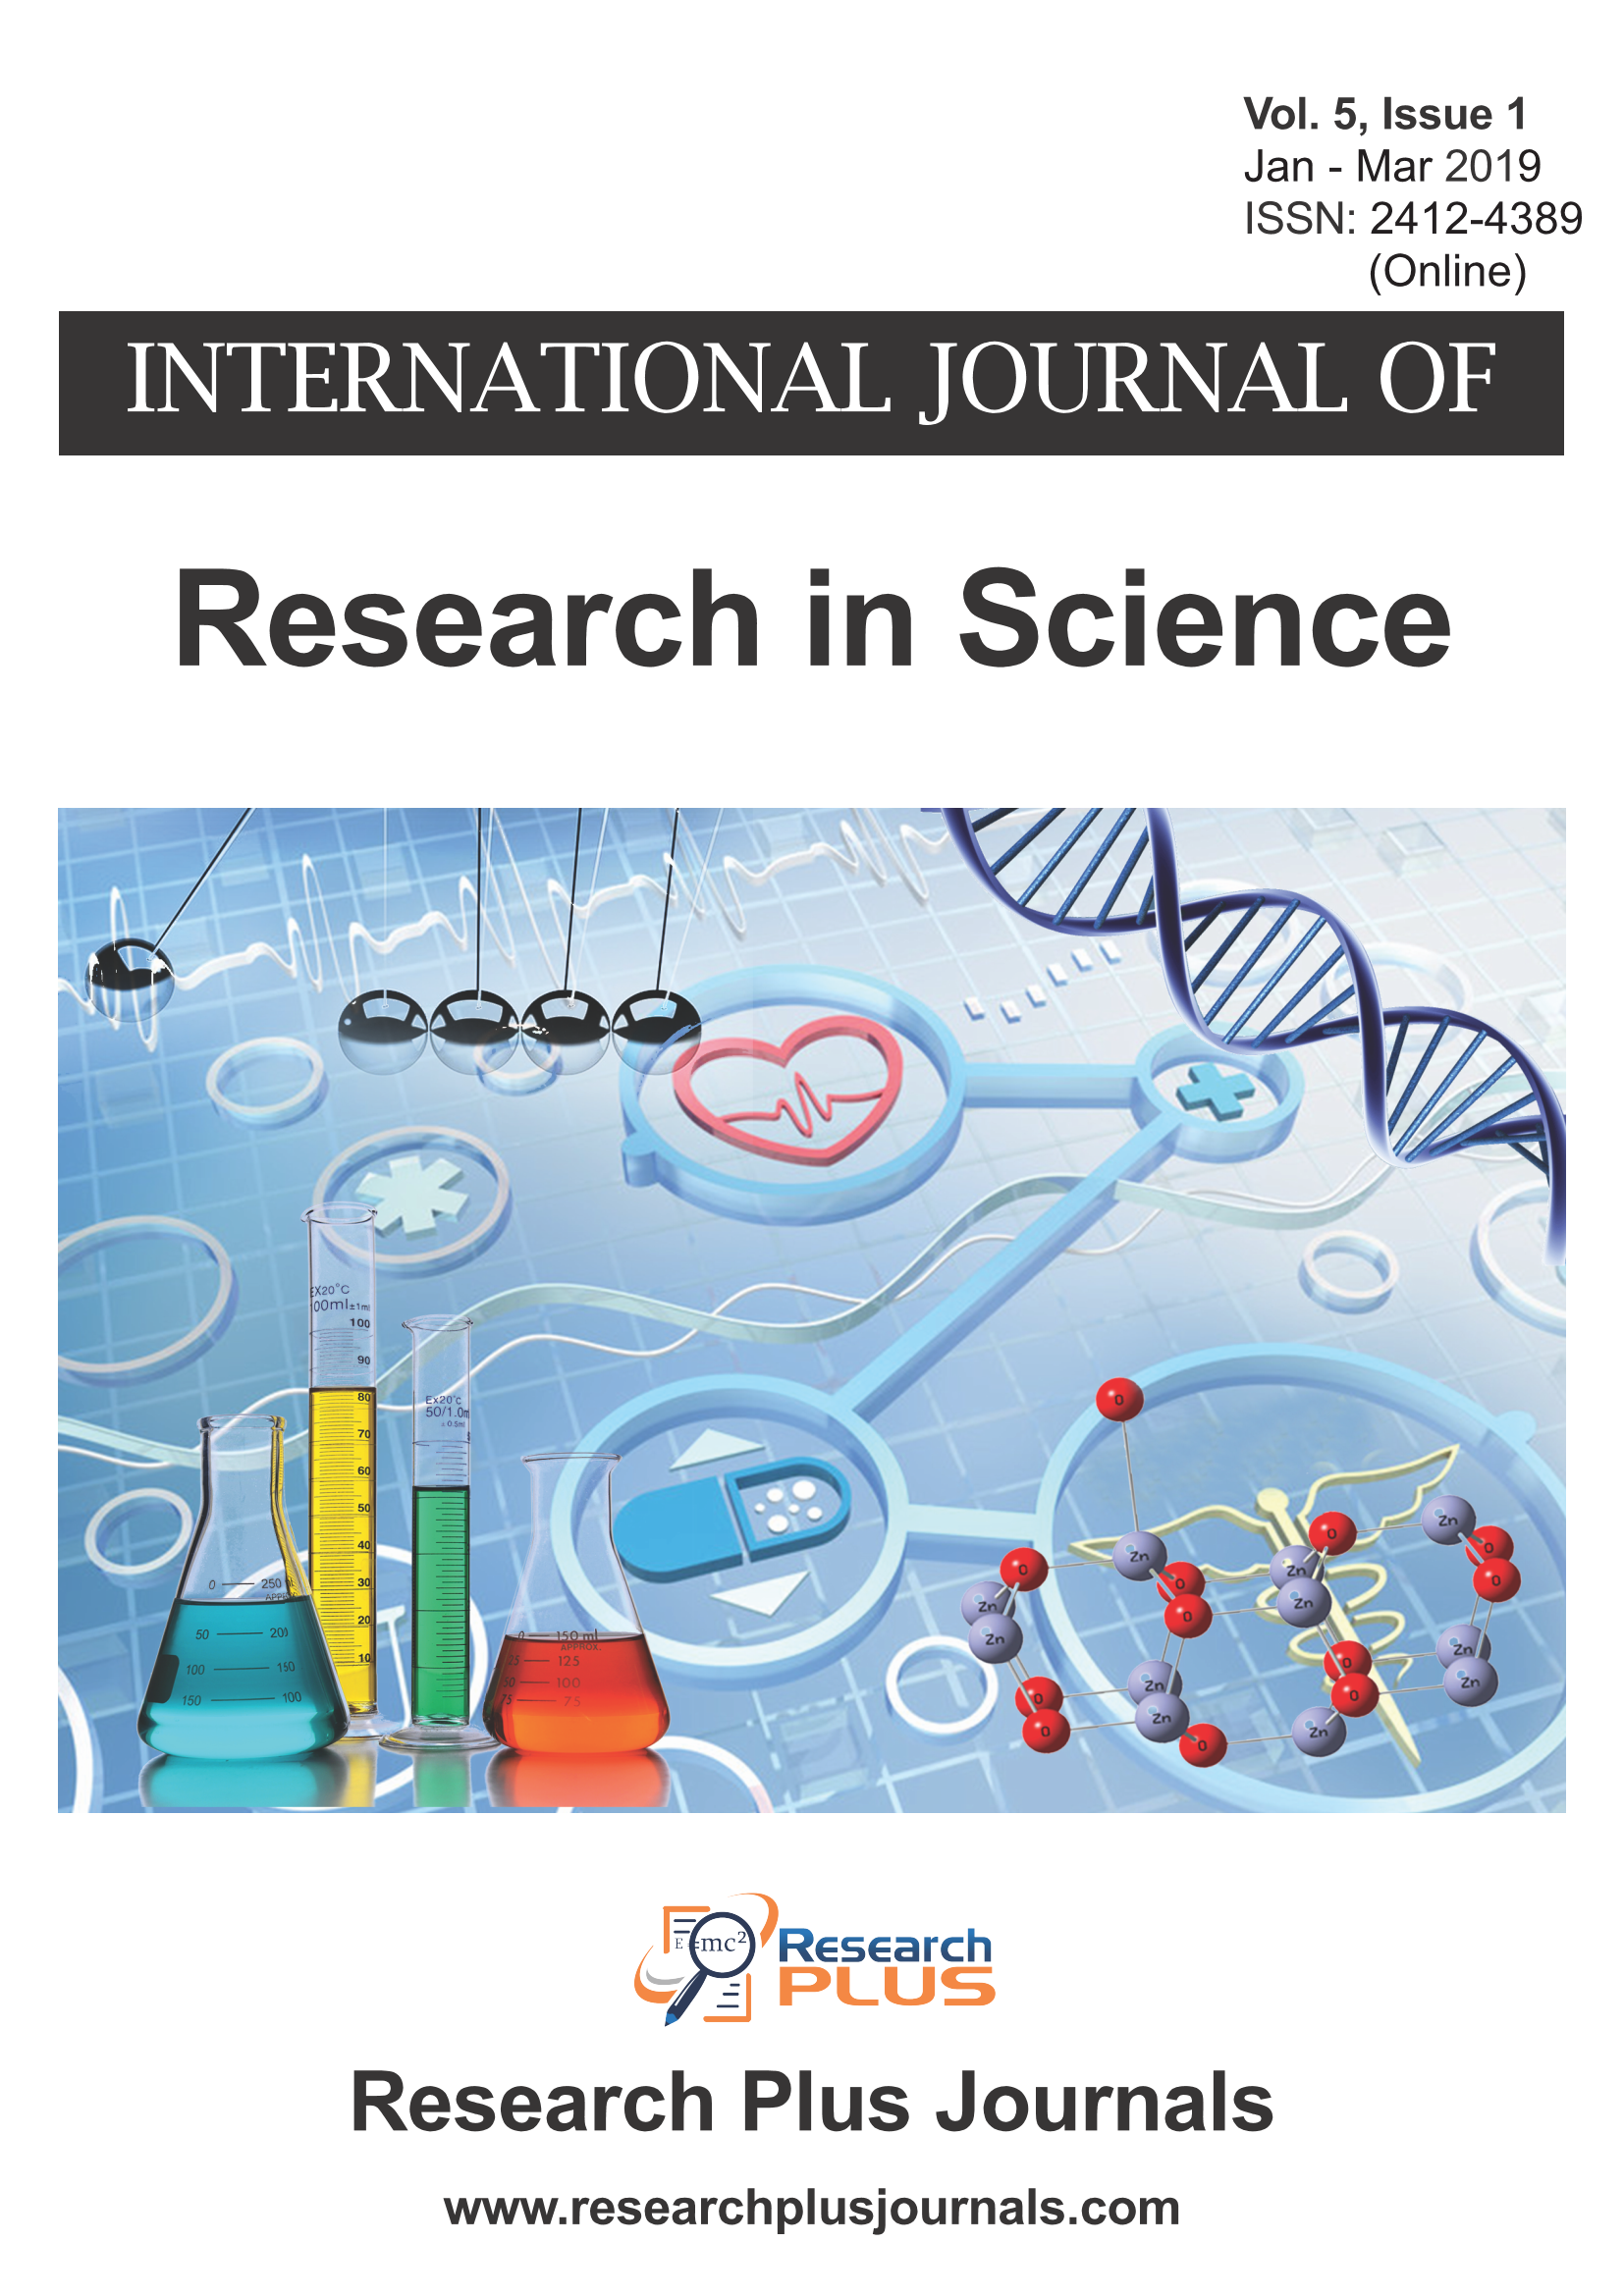 Volume 5, Issue 1, International Journal of Research in Science (IJRS) (Online ISSN 2412-4389)